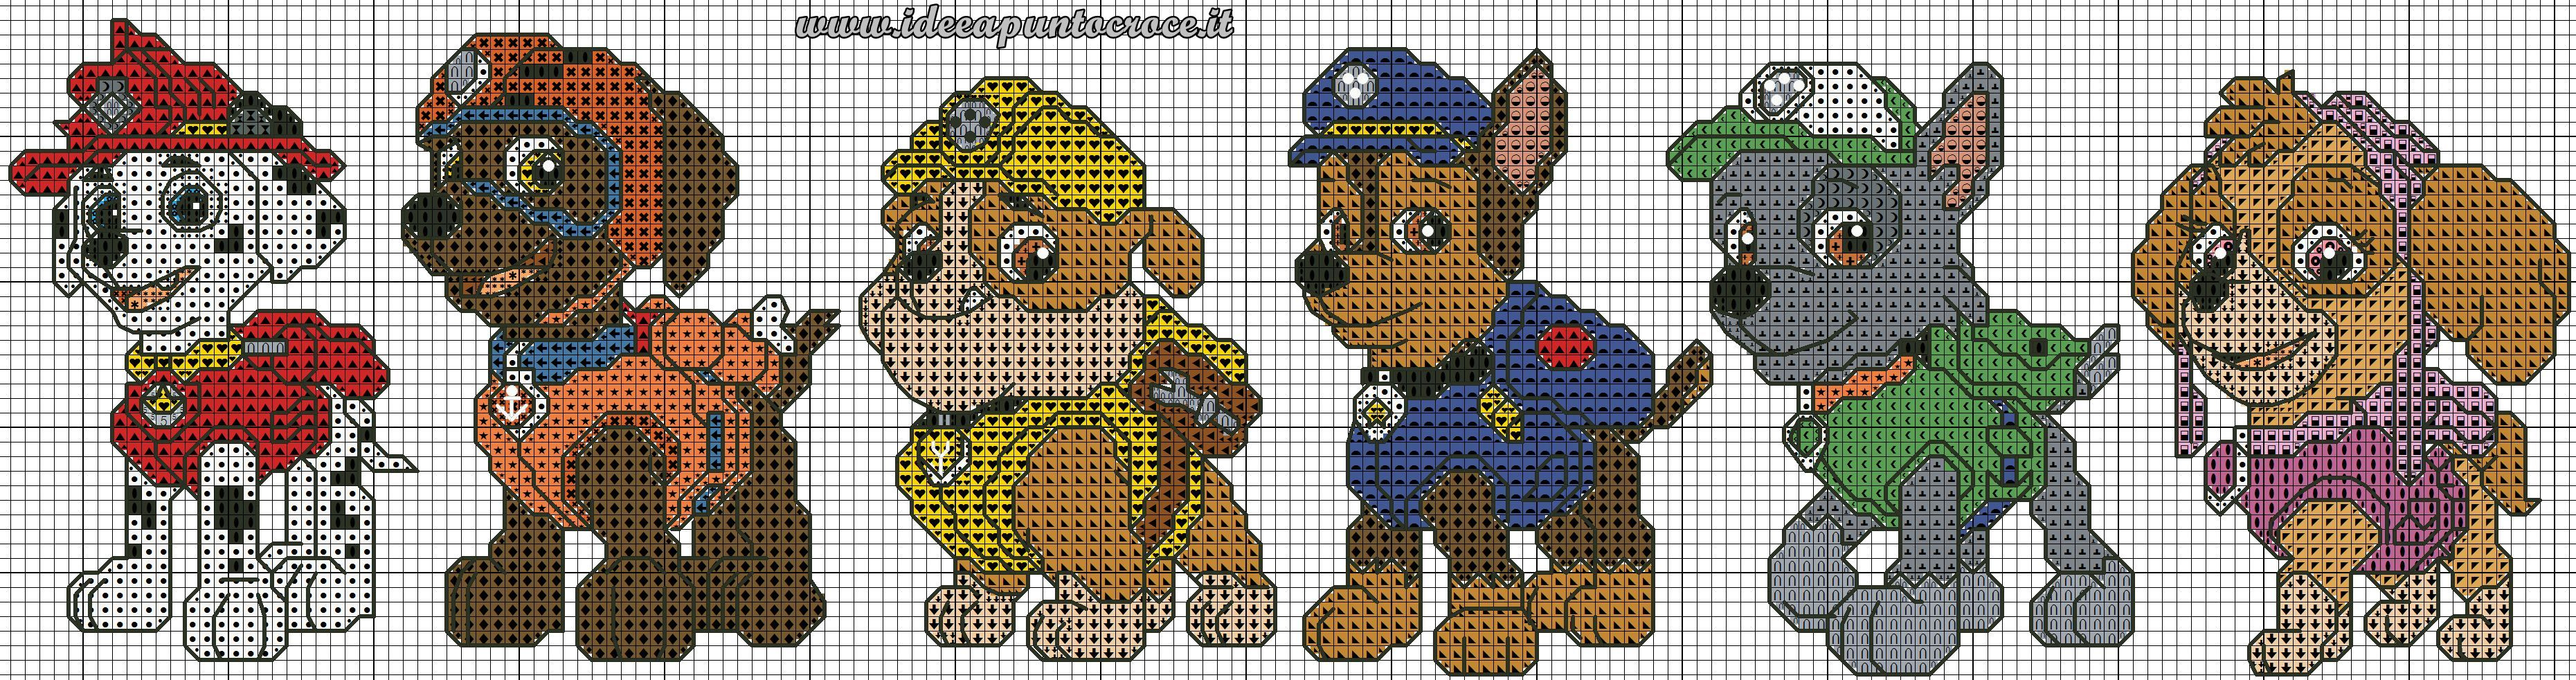 SCHEMA PAW PATROL PUNTO CROCE | to do | Pinterest | Bügelperlen ...